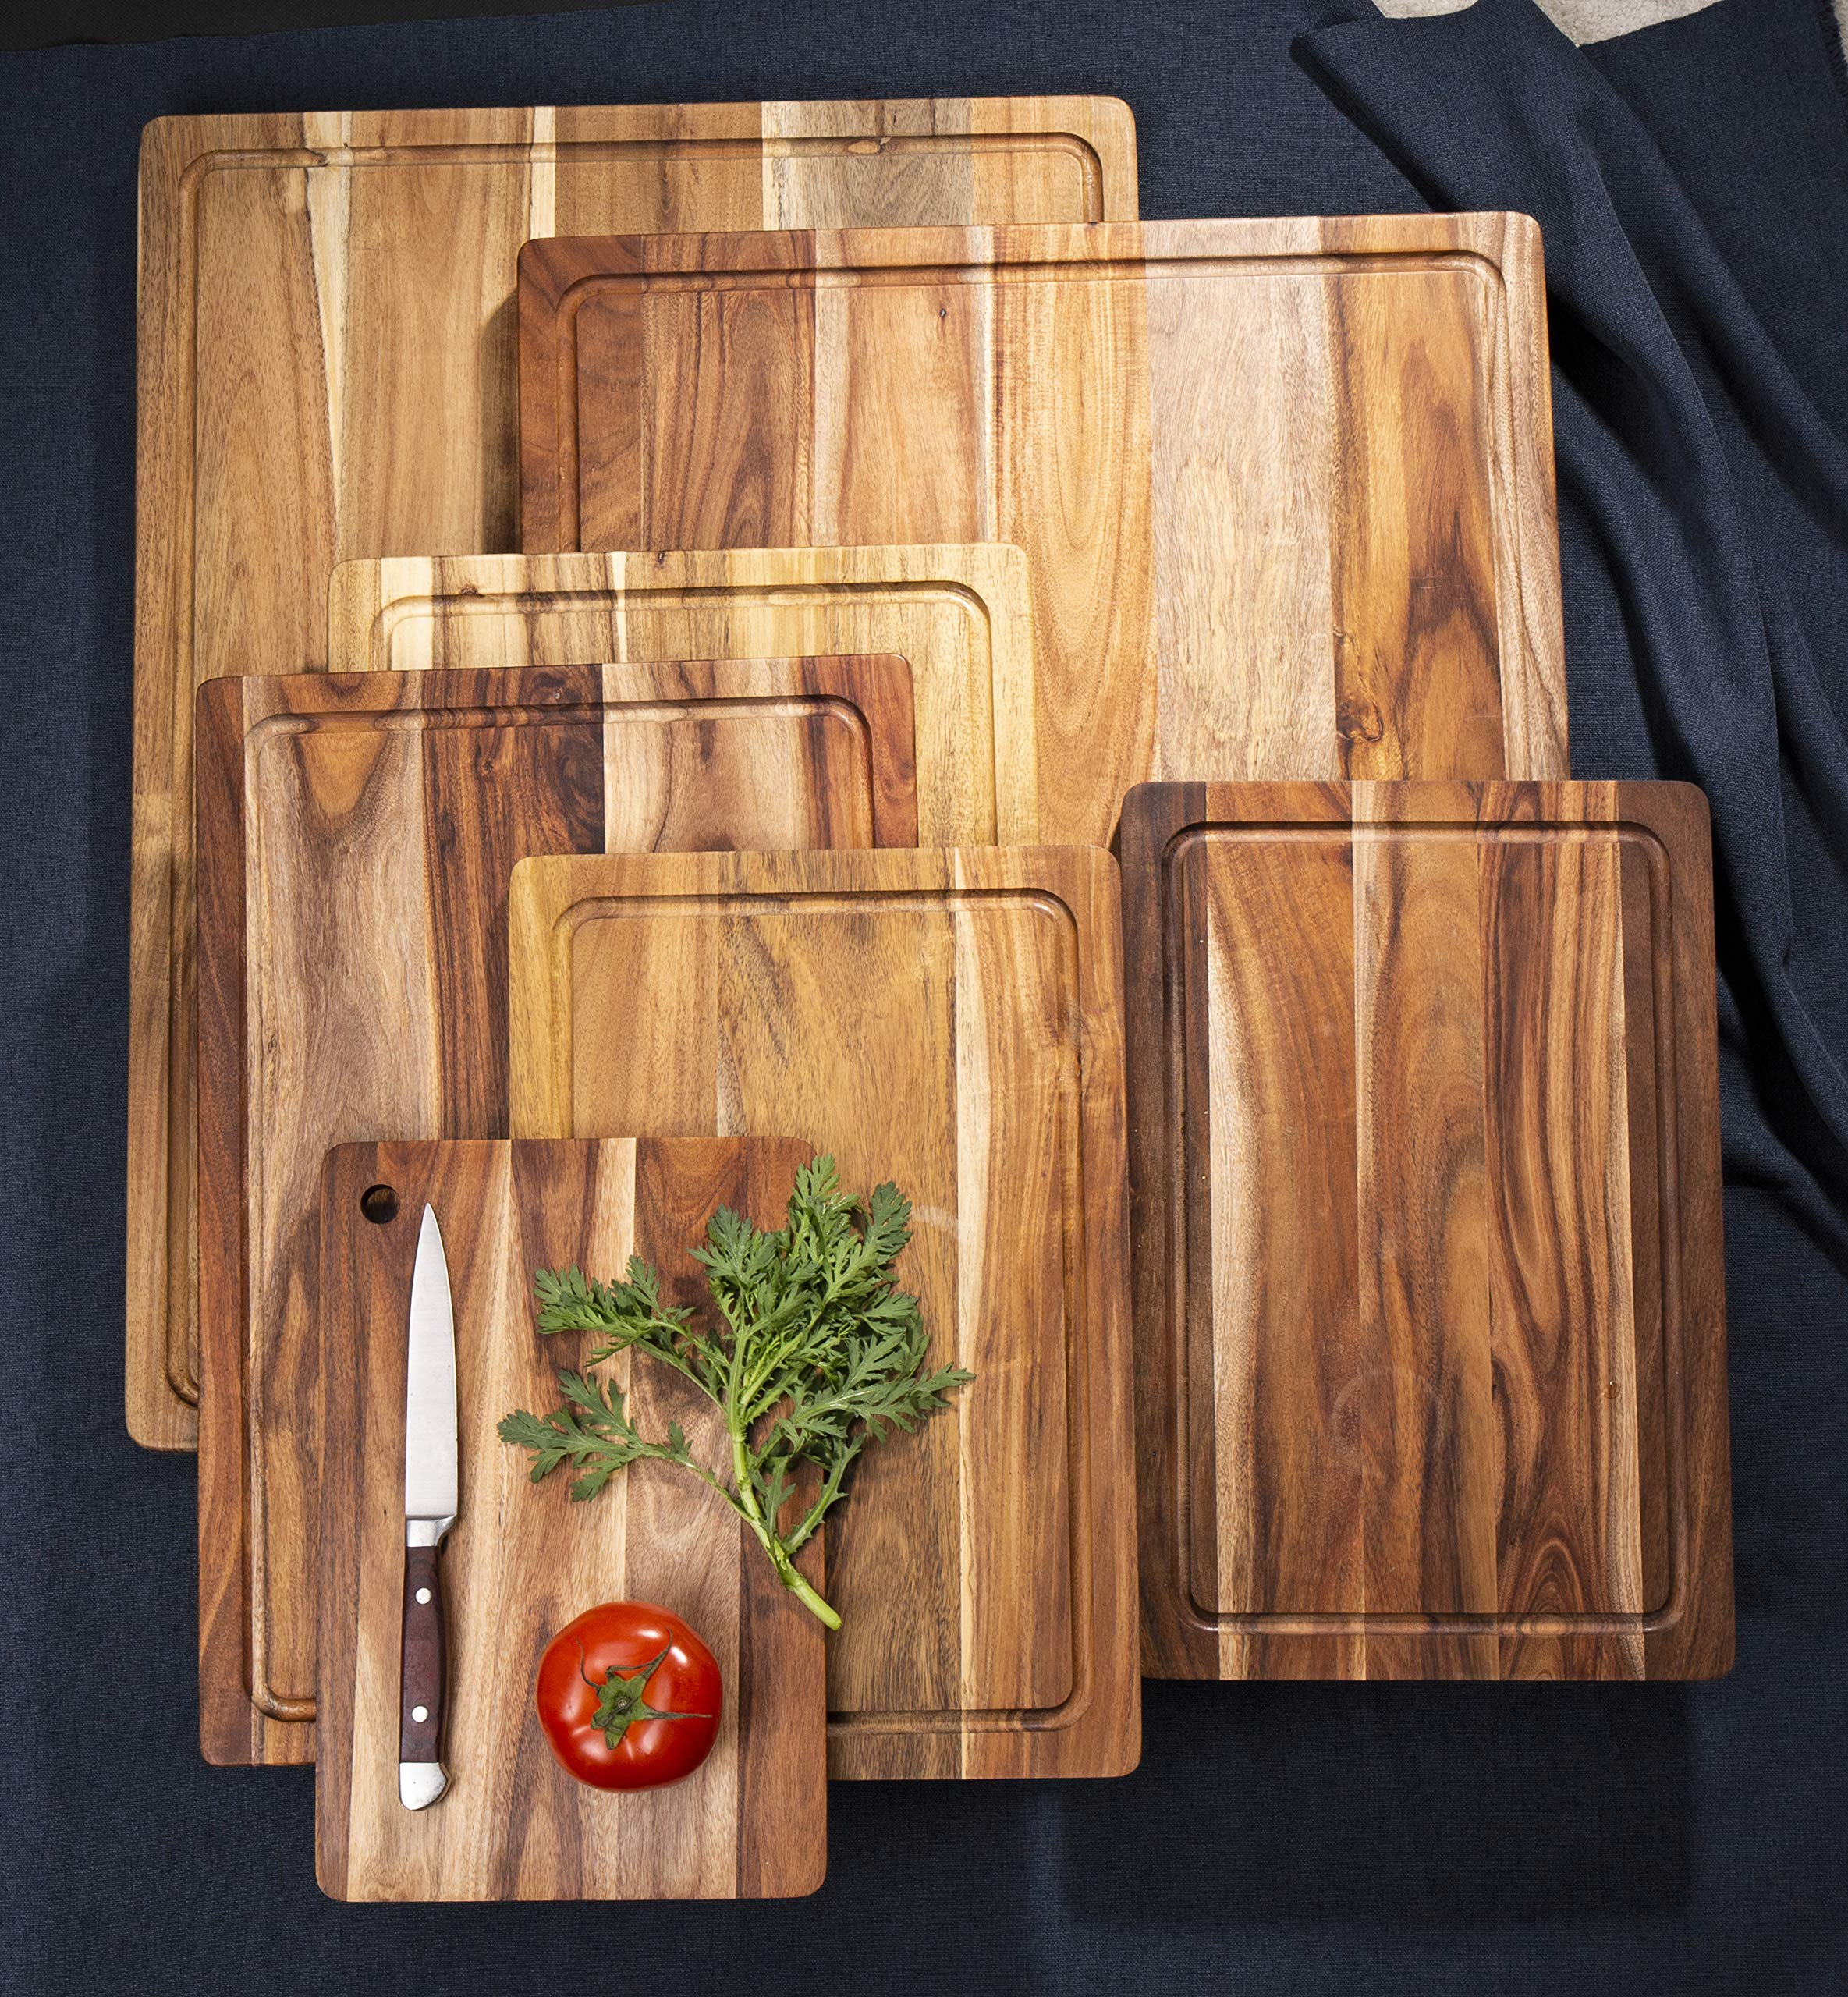 AIJAI Natural Wood Cutting Board(M-XL), Large Multipurpose Thick Acacia Wood Chopping Board for Kitchen Serving Tray for Vegetables, Fruit, Meat, Fish & Cheese| Reversible Butcher Block by AIJAI (Image #5)